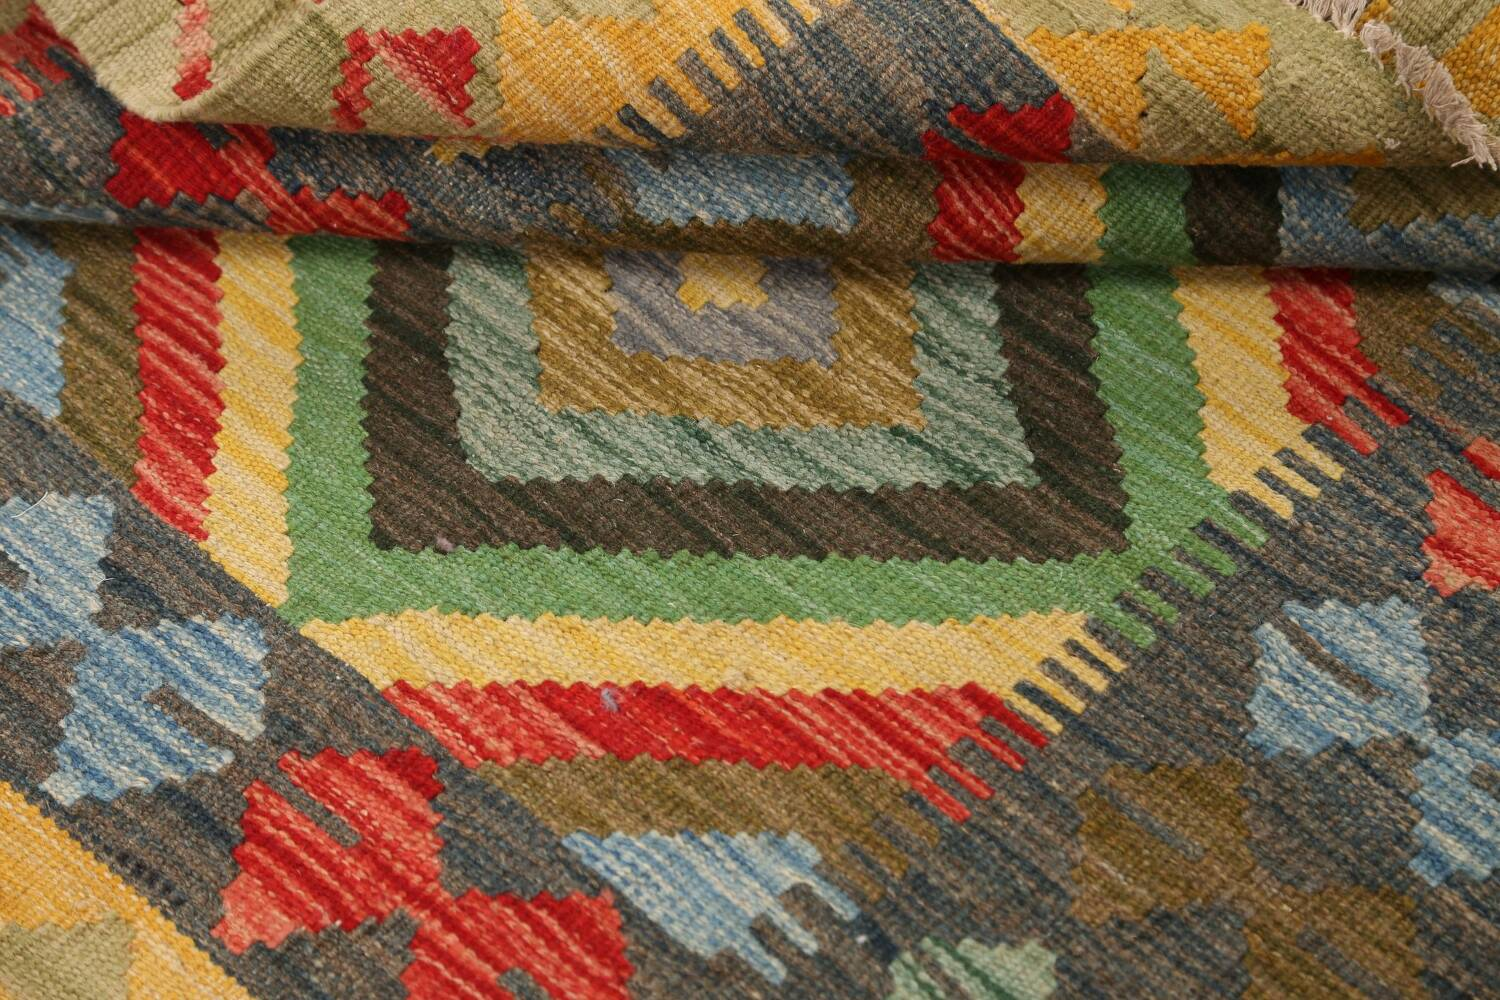 South-Western Reversible Kilim Oriental Area Rug 3x3 Square image 13